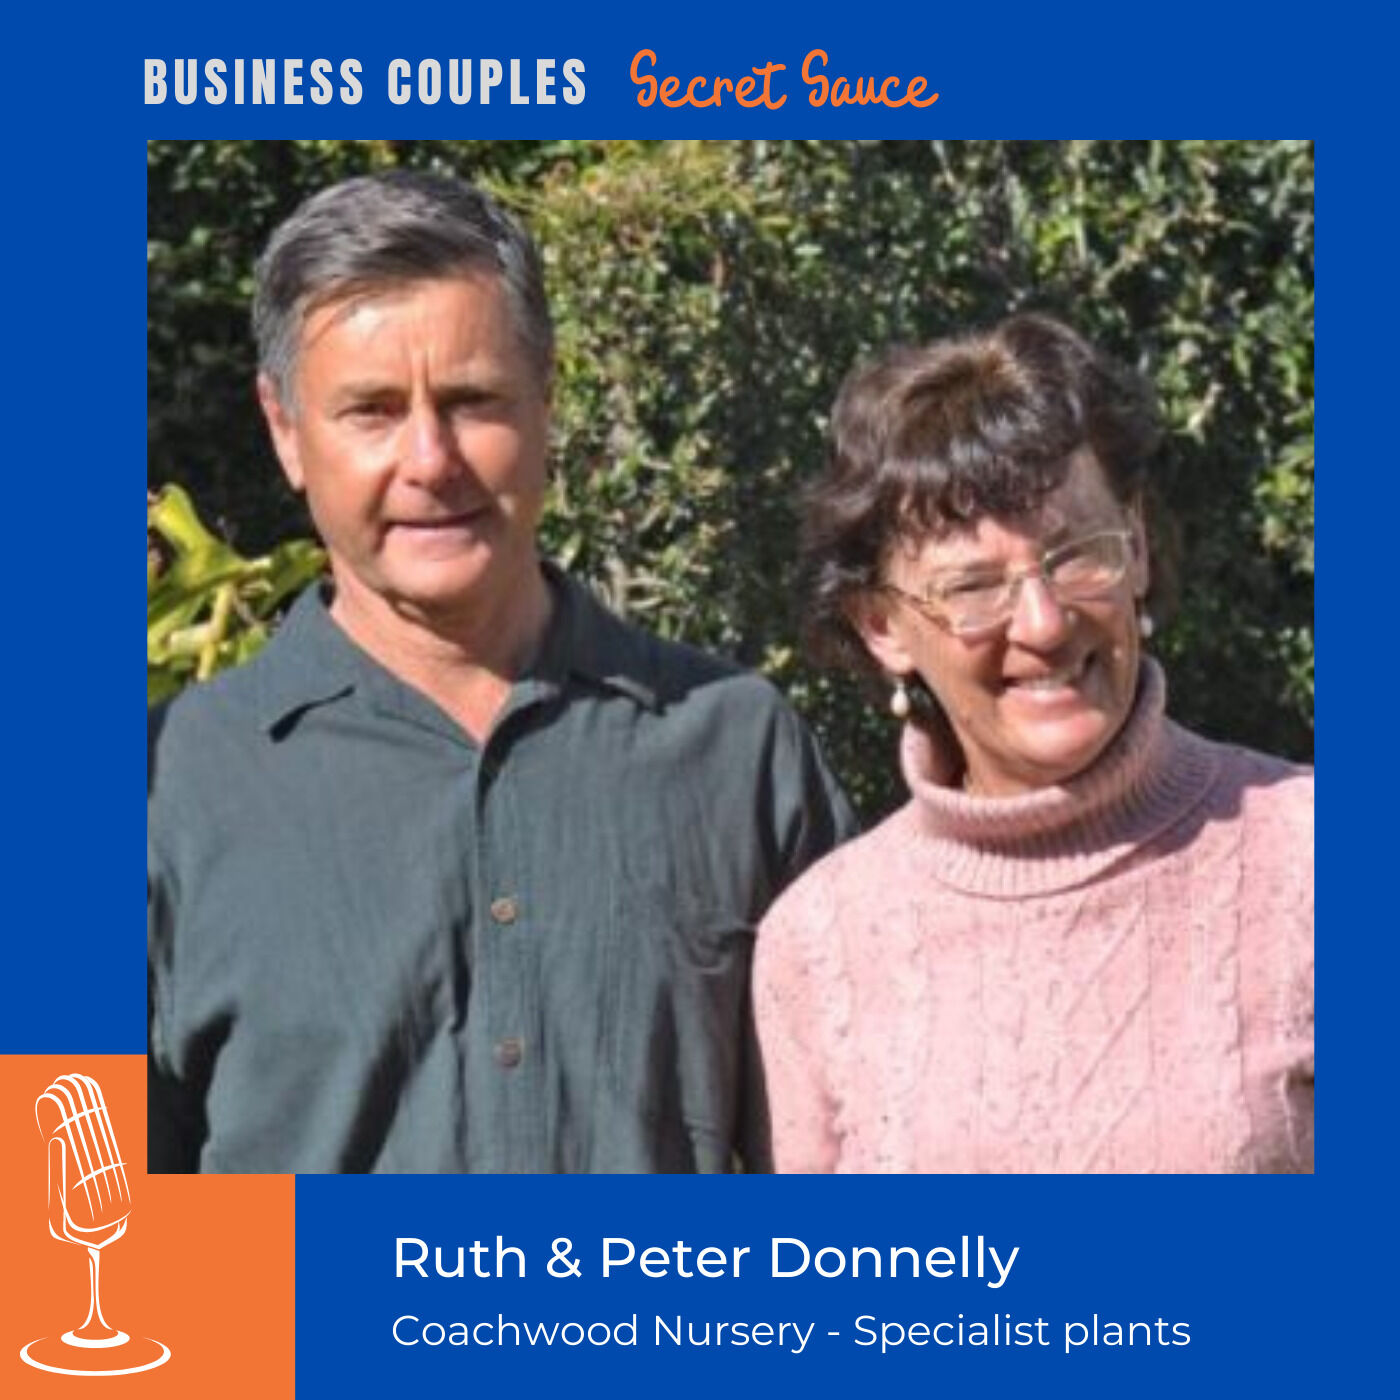 Peter & Ruth Donnelly - Coachwood Nursery - (specialist nursery and dried flower emporium)